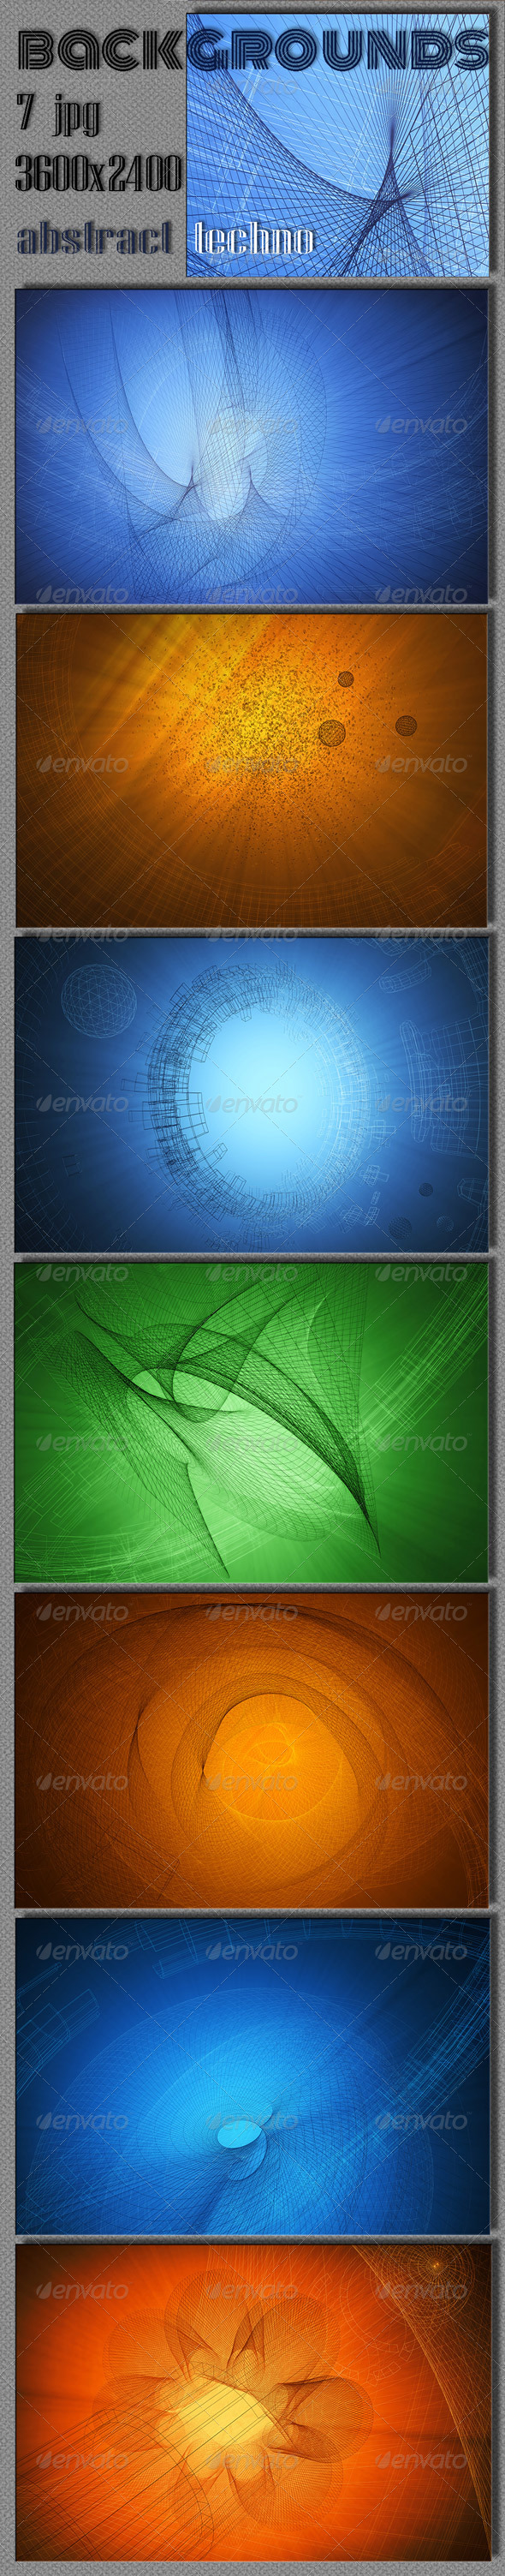 GraphicRiver Abstract Techno Background 5889134